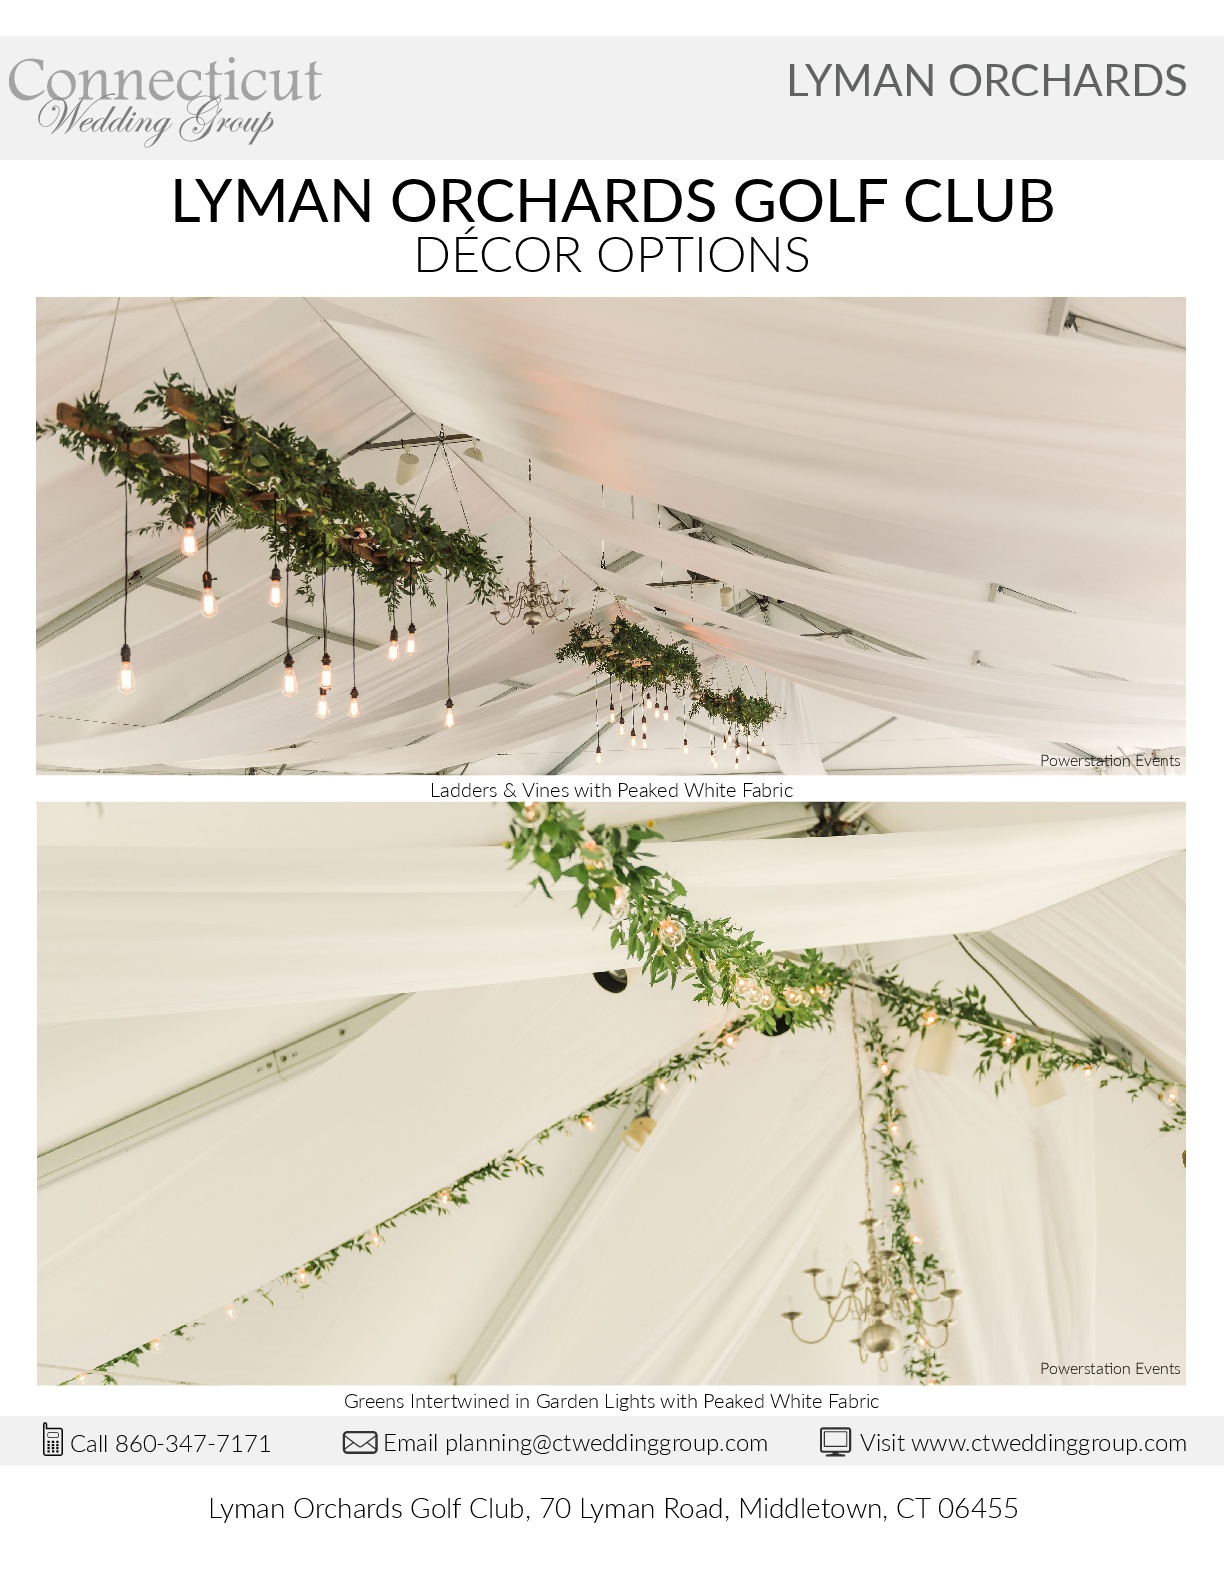 Lyman-Orchards-Golf-Club-Decor-Package_2018-2019-001